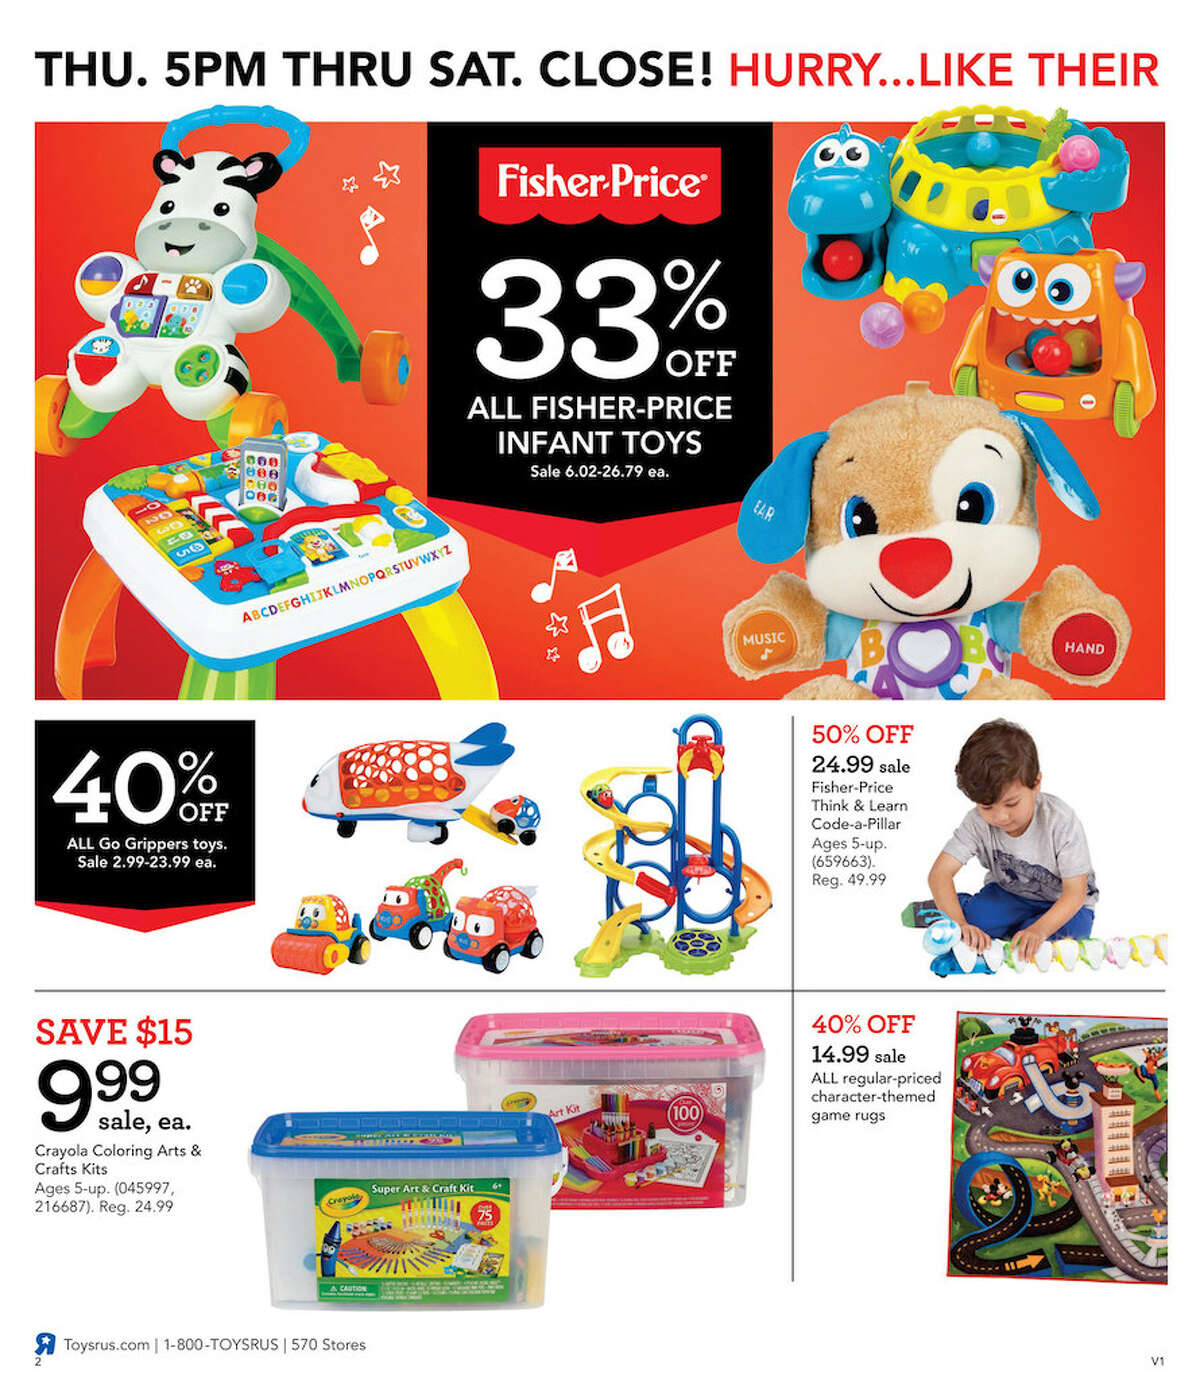 Despite a rocky year one of America's most well known toy stores, Toys 'R' Us has released 28 pages worth of Black Friday deals.